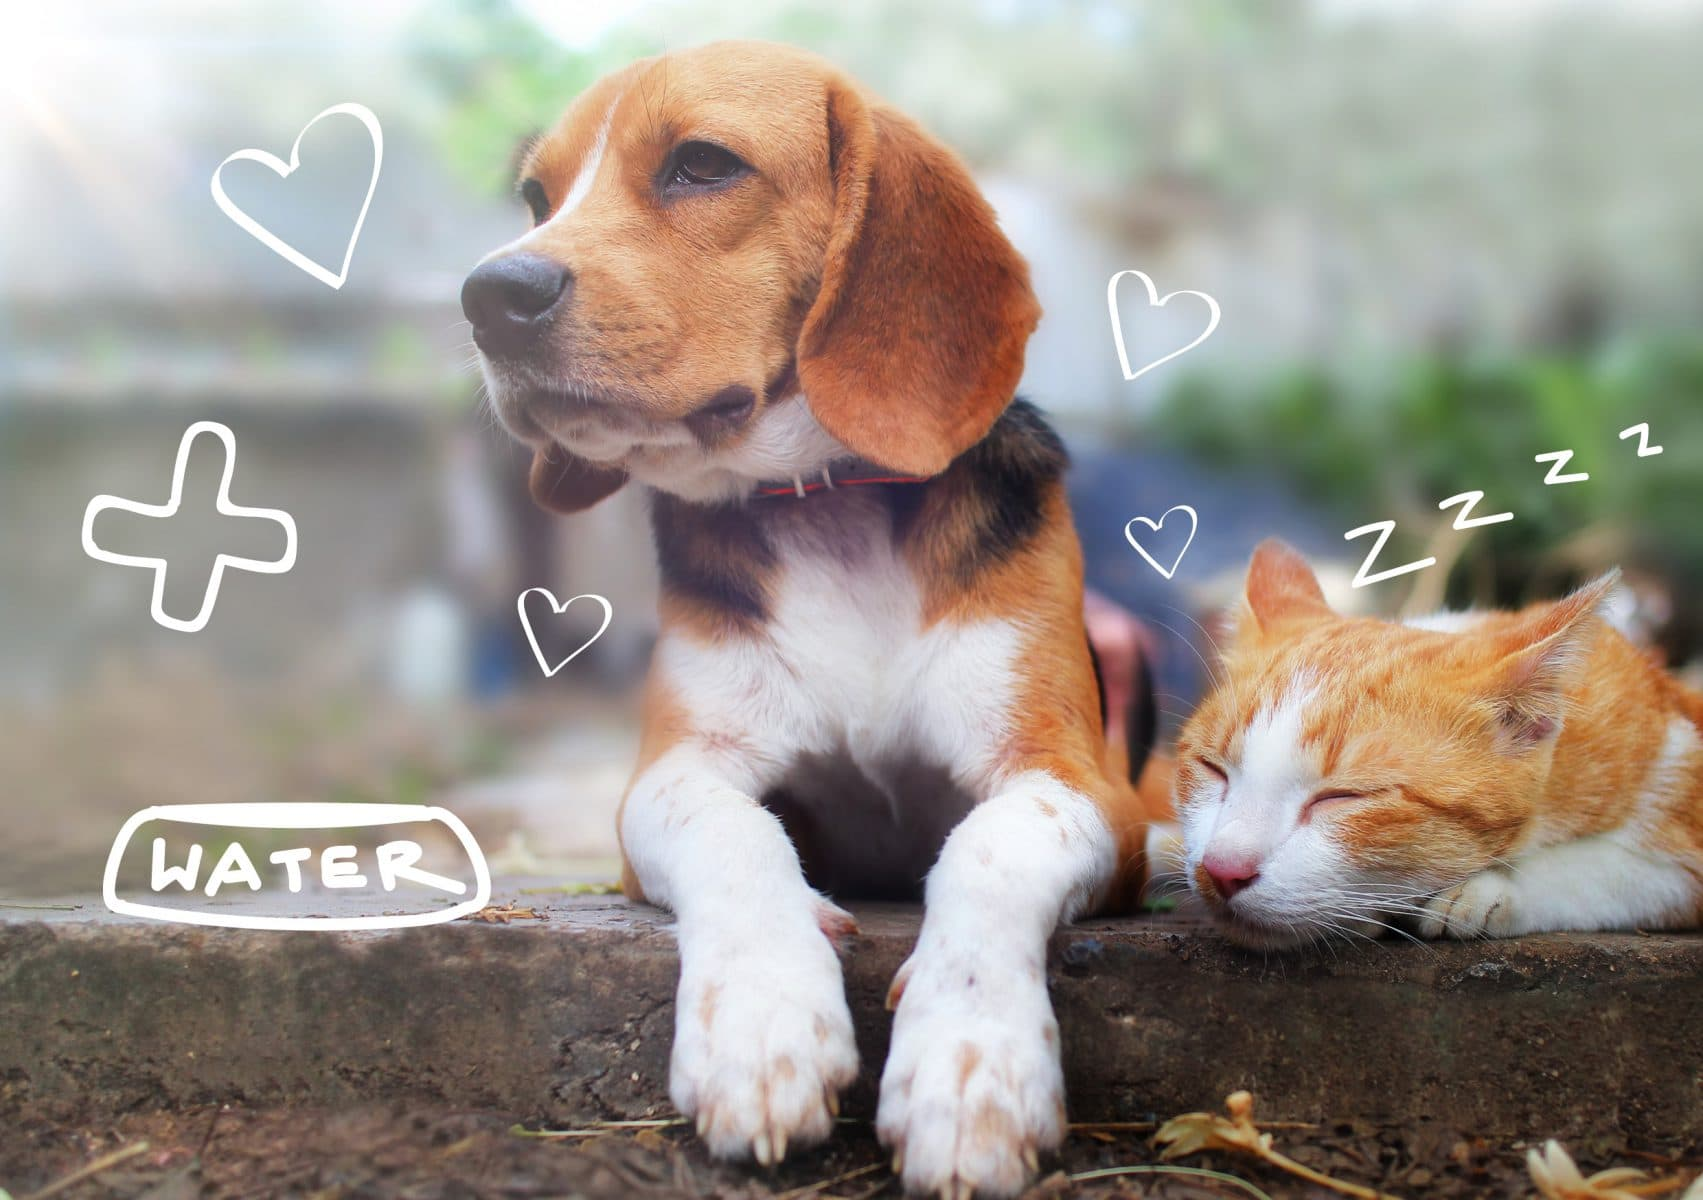 Should I get a dog or a cat? A cat and dog together on a wall